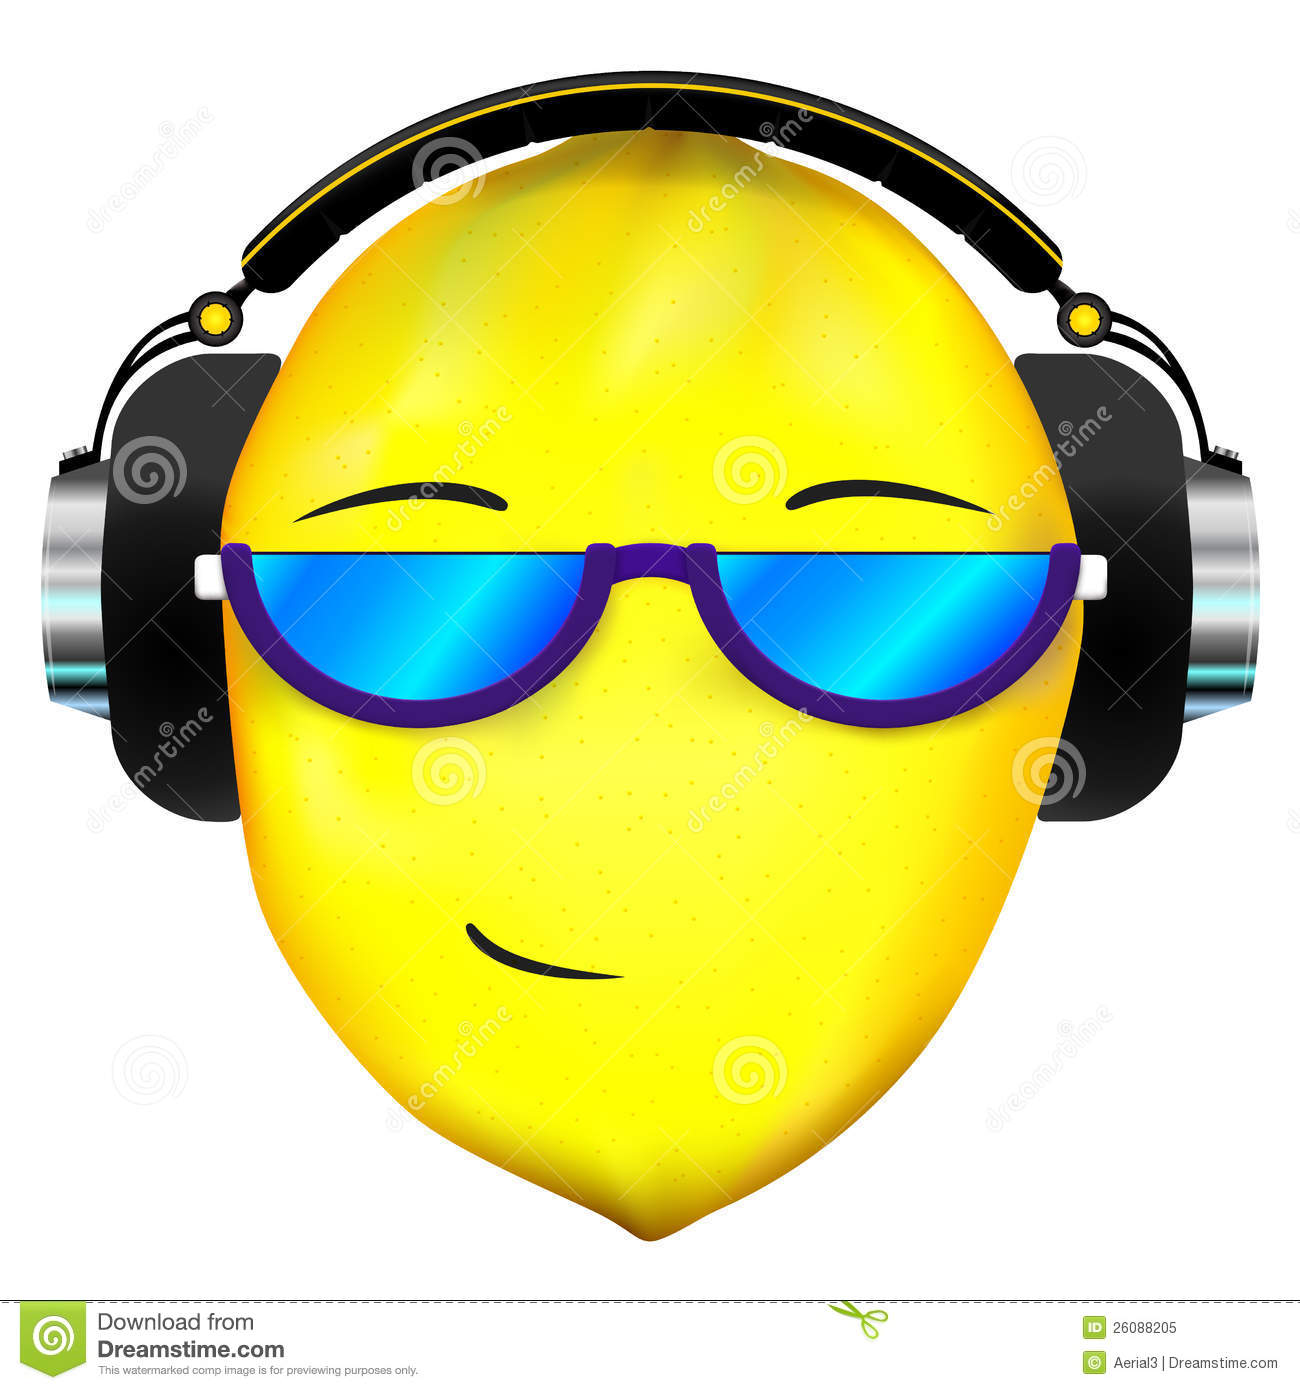 emoji map with Royalty Free Stock Photo Lemon Face Headphones Image26088205 on Lil Mayo Rules The Galaxy Instagram 1239 furthermore Red Push Pin additionally O ouchsos as well Volcano Tokyo in addition Location Icons 961352.